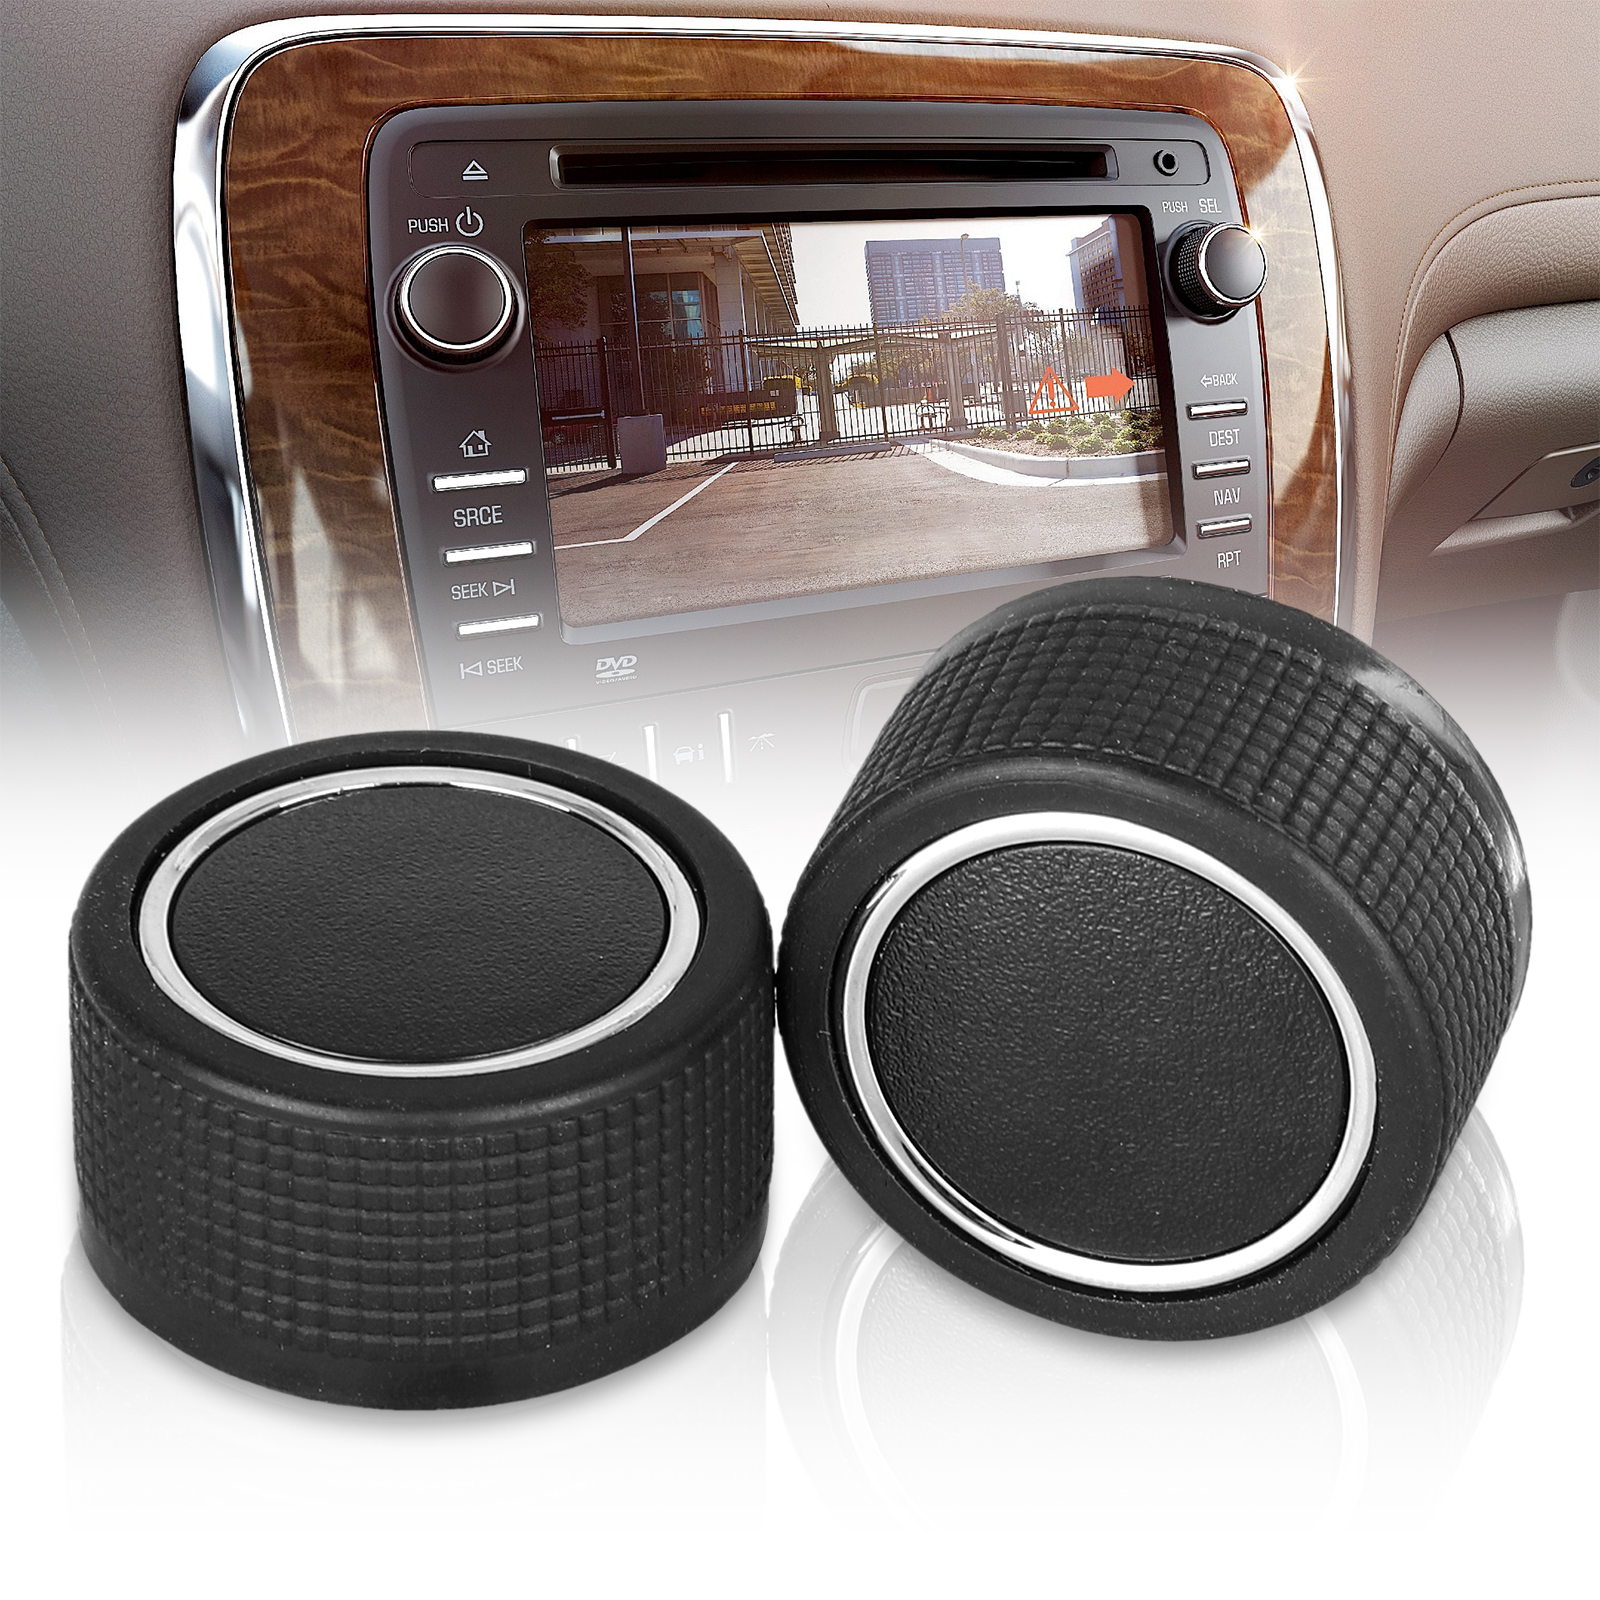 Rear Radio Volume Control Knob Pair Chrome FOR Buick Cadillac Chevy GMC US STOCK